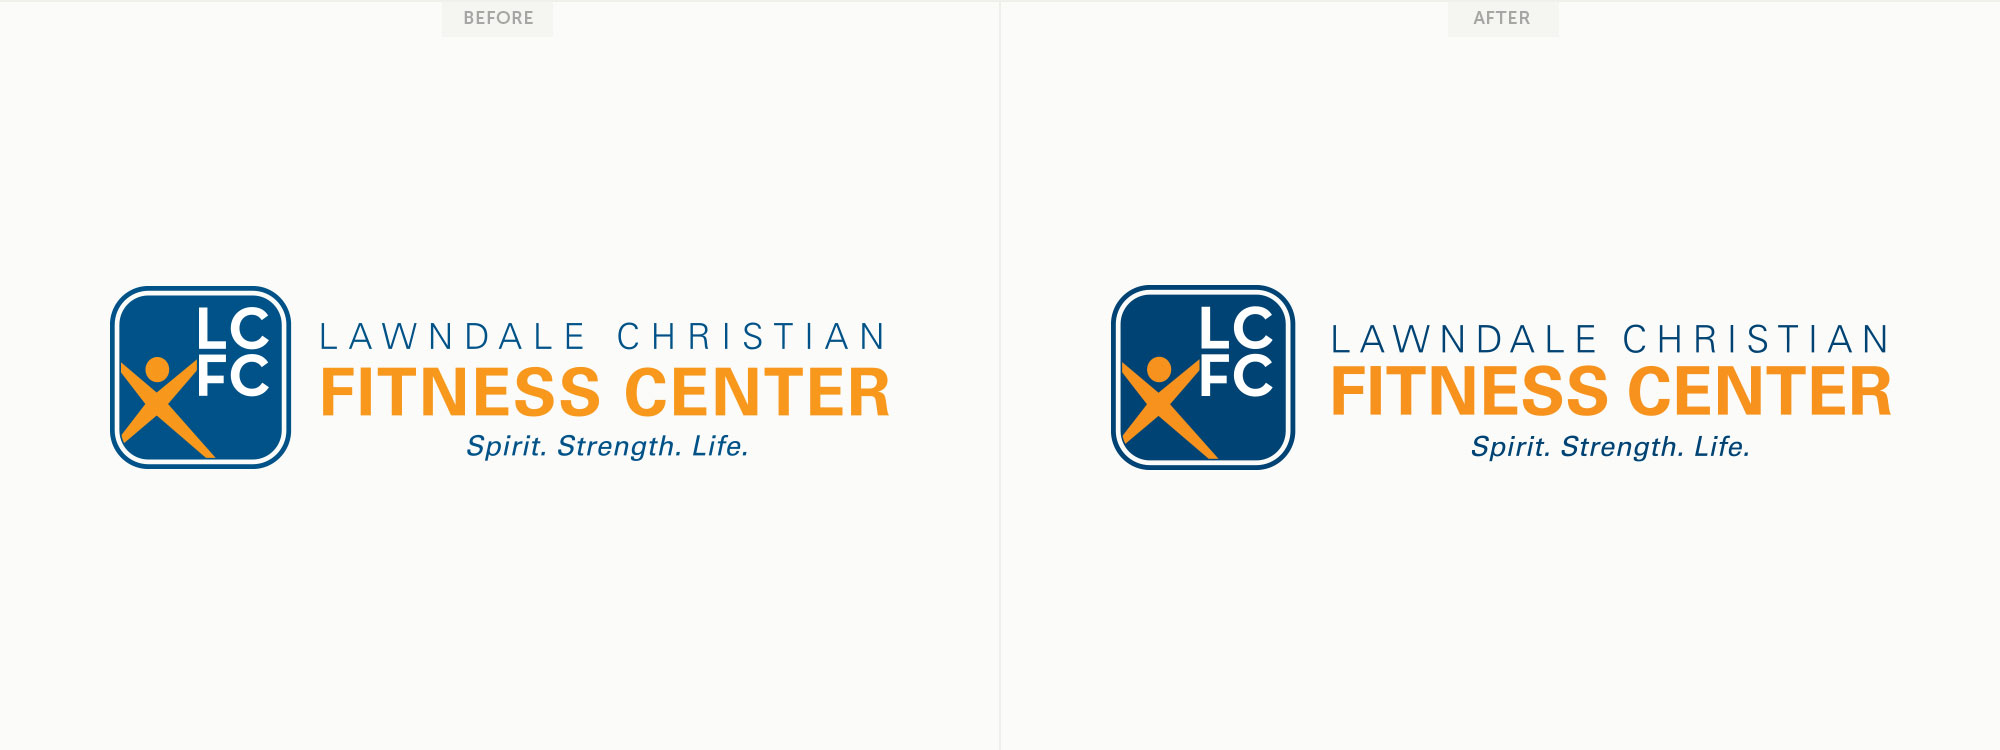 Before and after for Lawndale Christian Fitness Center's logo.Image copyright Jeff Miller, HellothisisJeff Design LLC